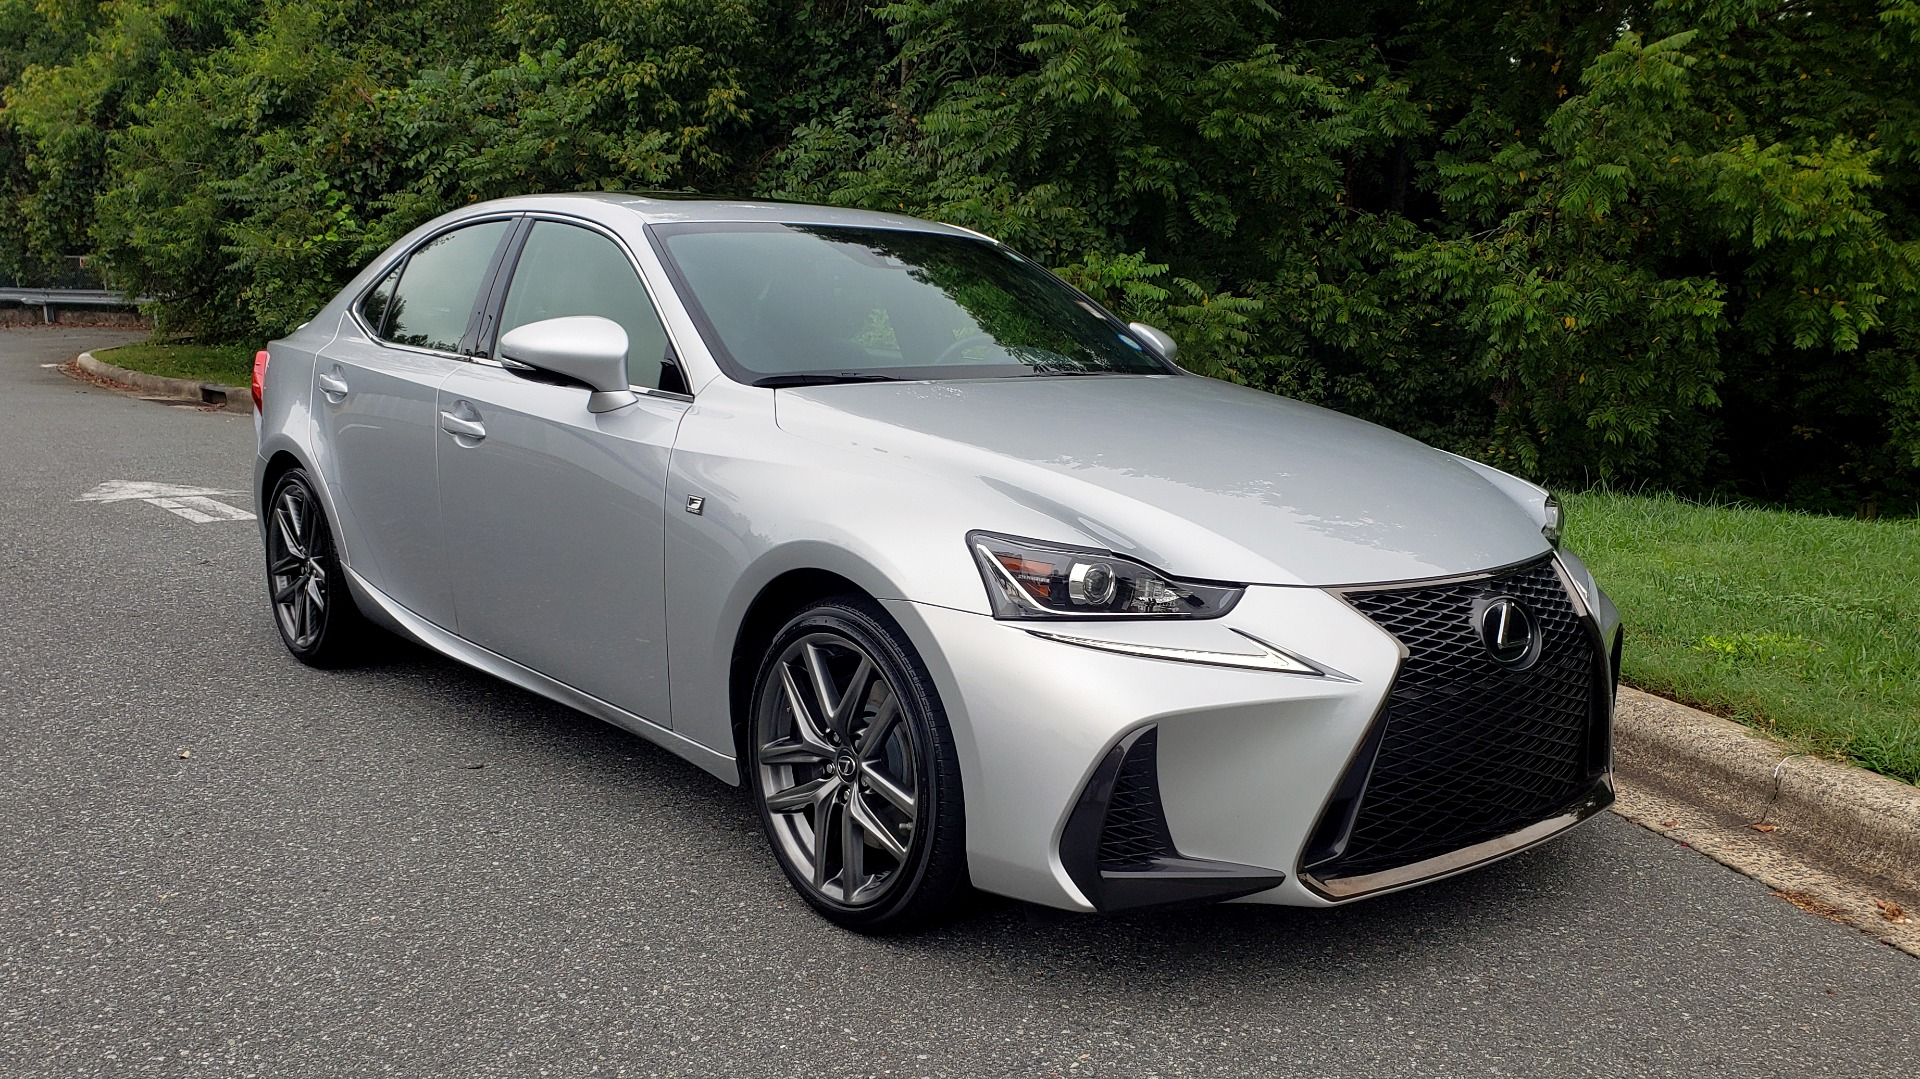 Used 2017 Lexus IS 200T F-SPORT / LEATHER / SUNROOF / 18IN WHEELS / REARVIEW for sale Sold at Formula Imports in Charlotte NC 28227 5